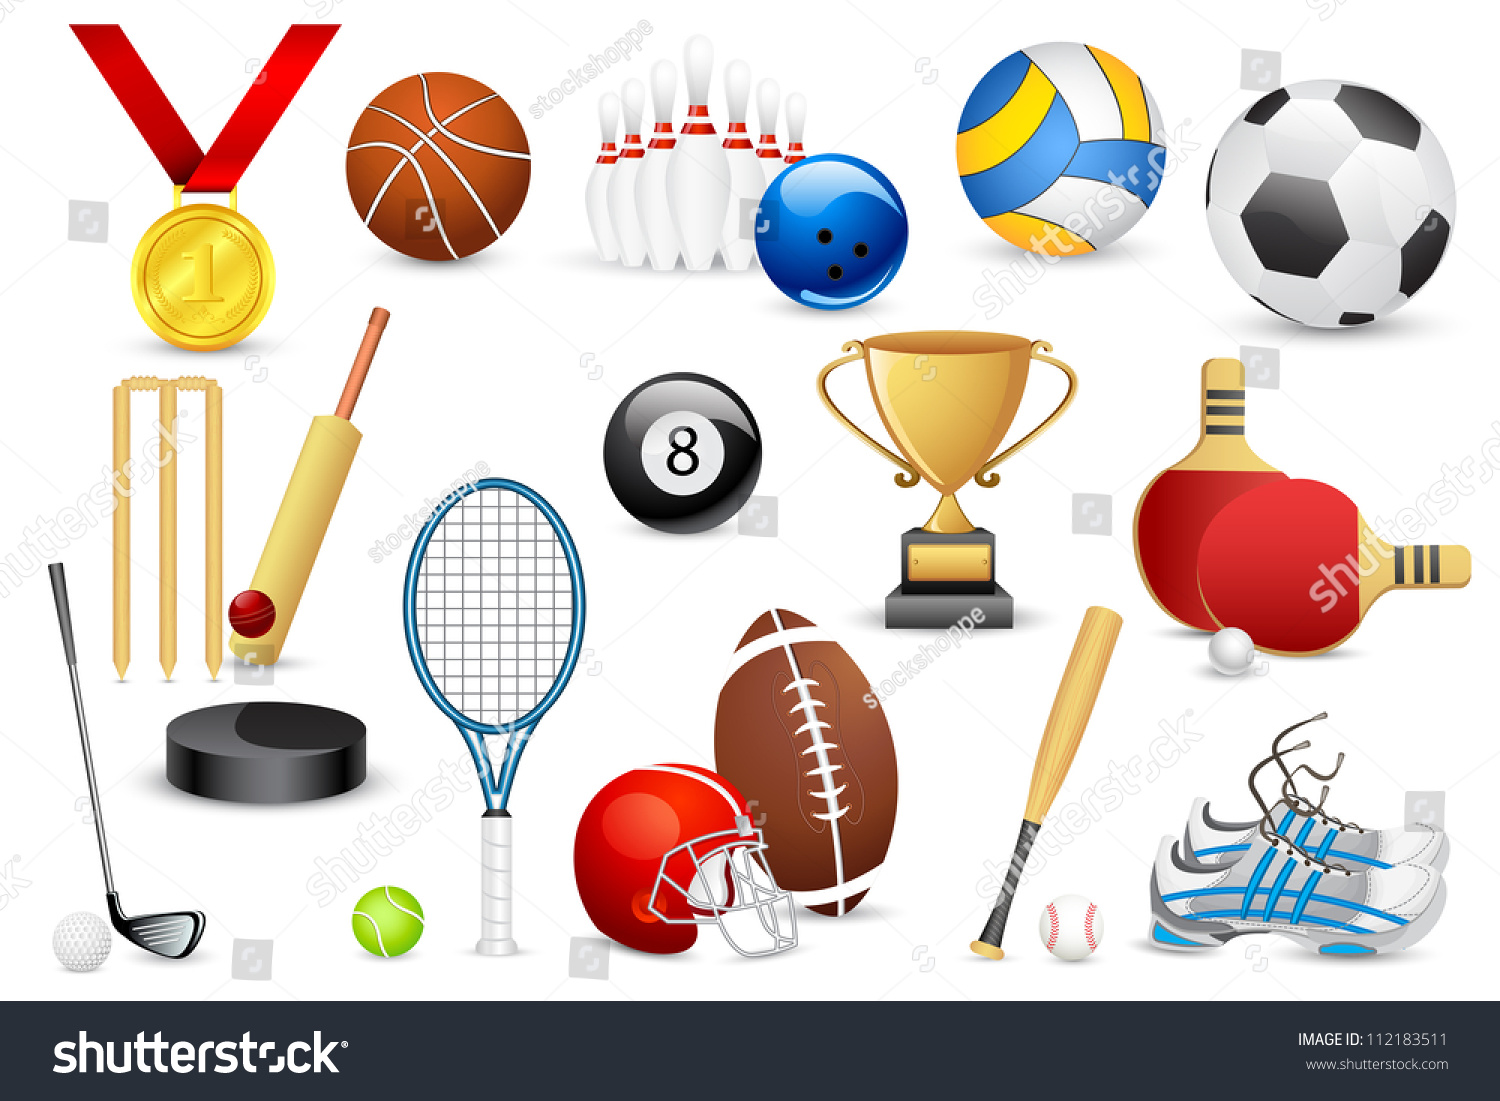 sports different shutterstock vector icon illustration footage vectors illustrations